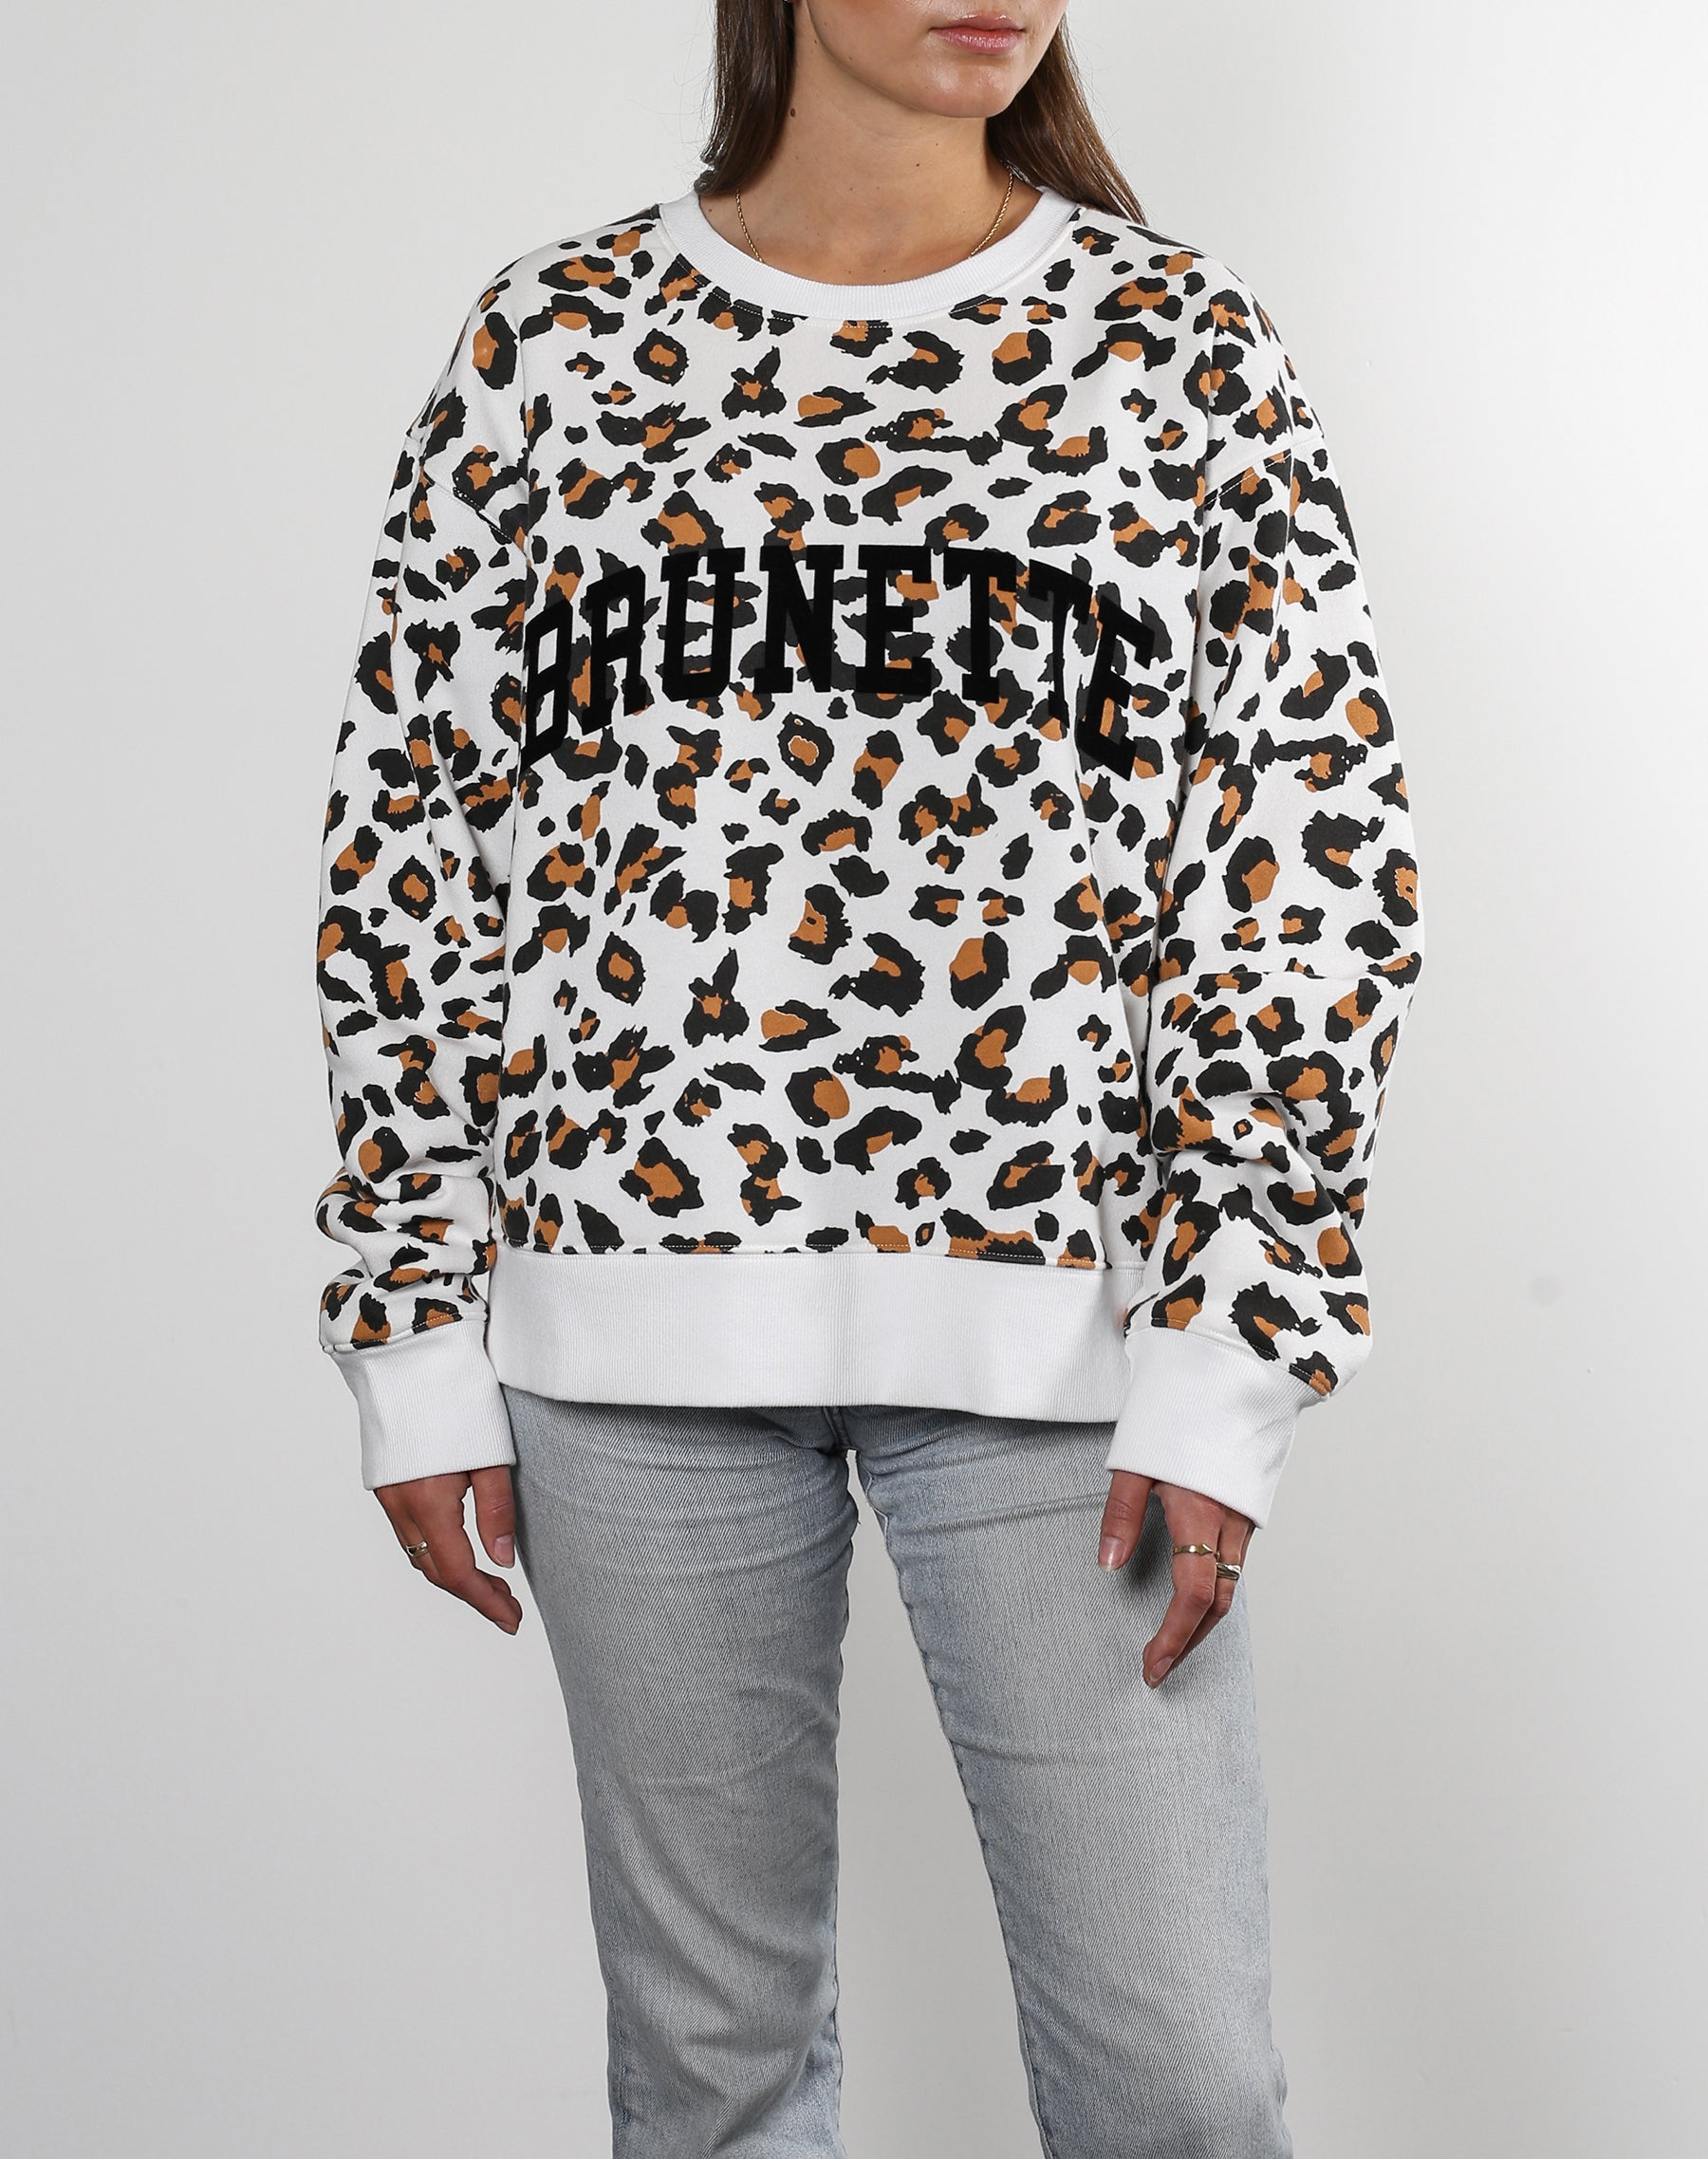 This is a ecommerce photo of the Brunette Step Sister Crew Neck Sweatshirt in White Leopard by Brunette the Label